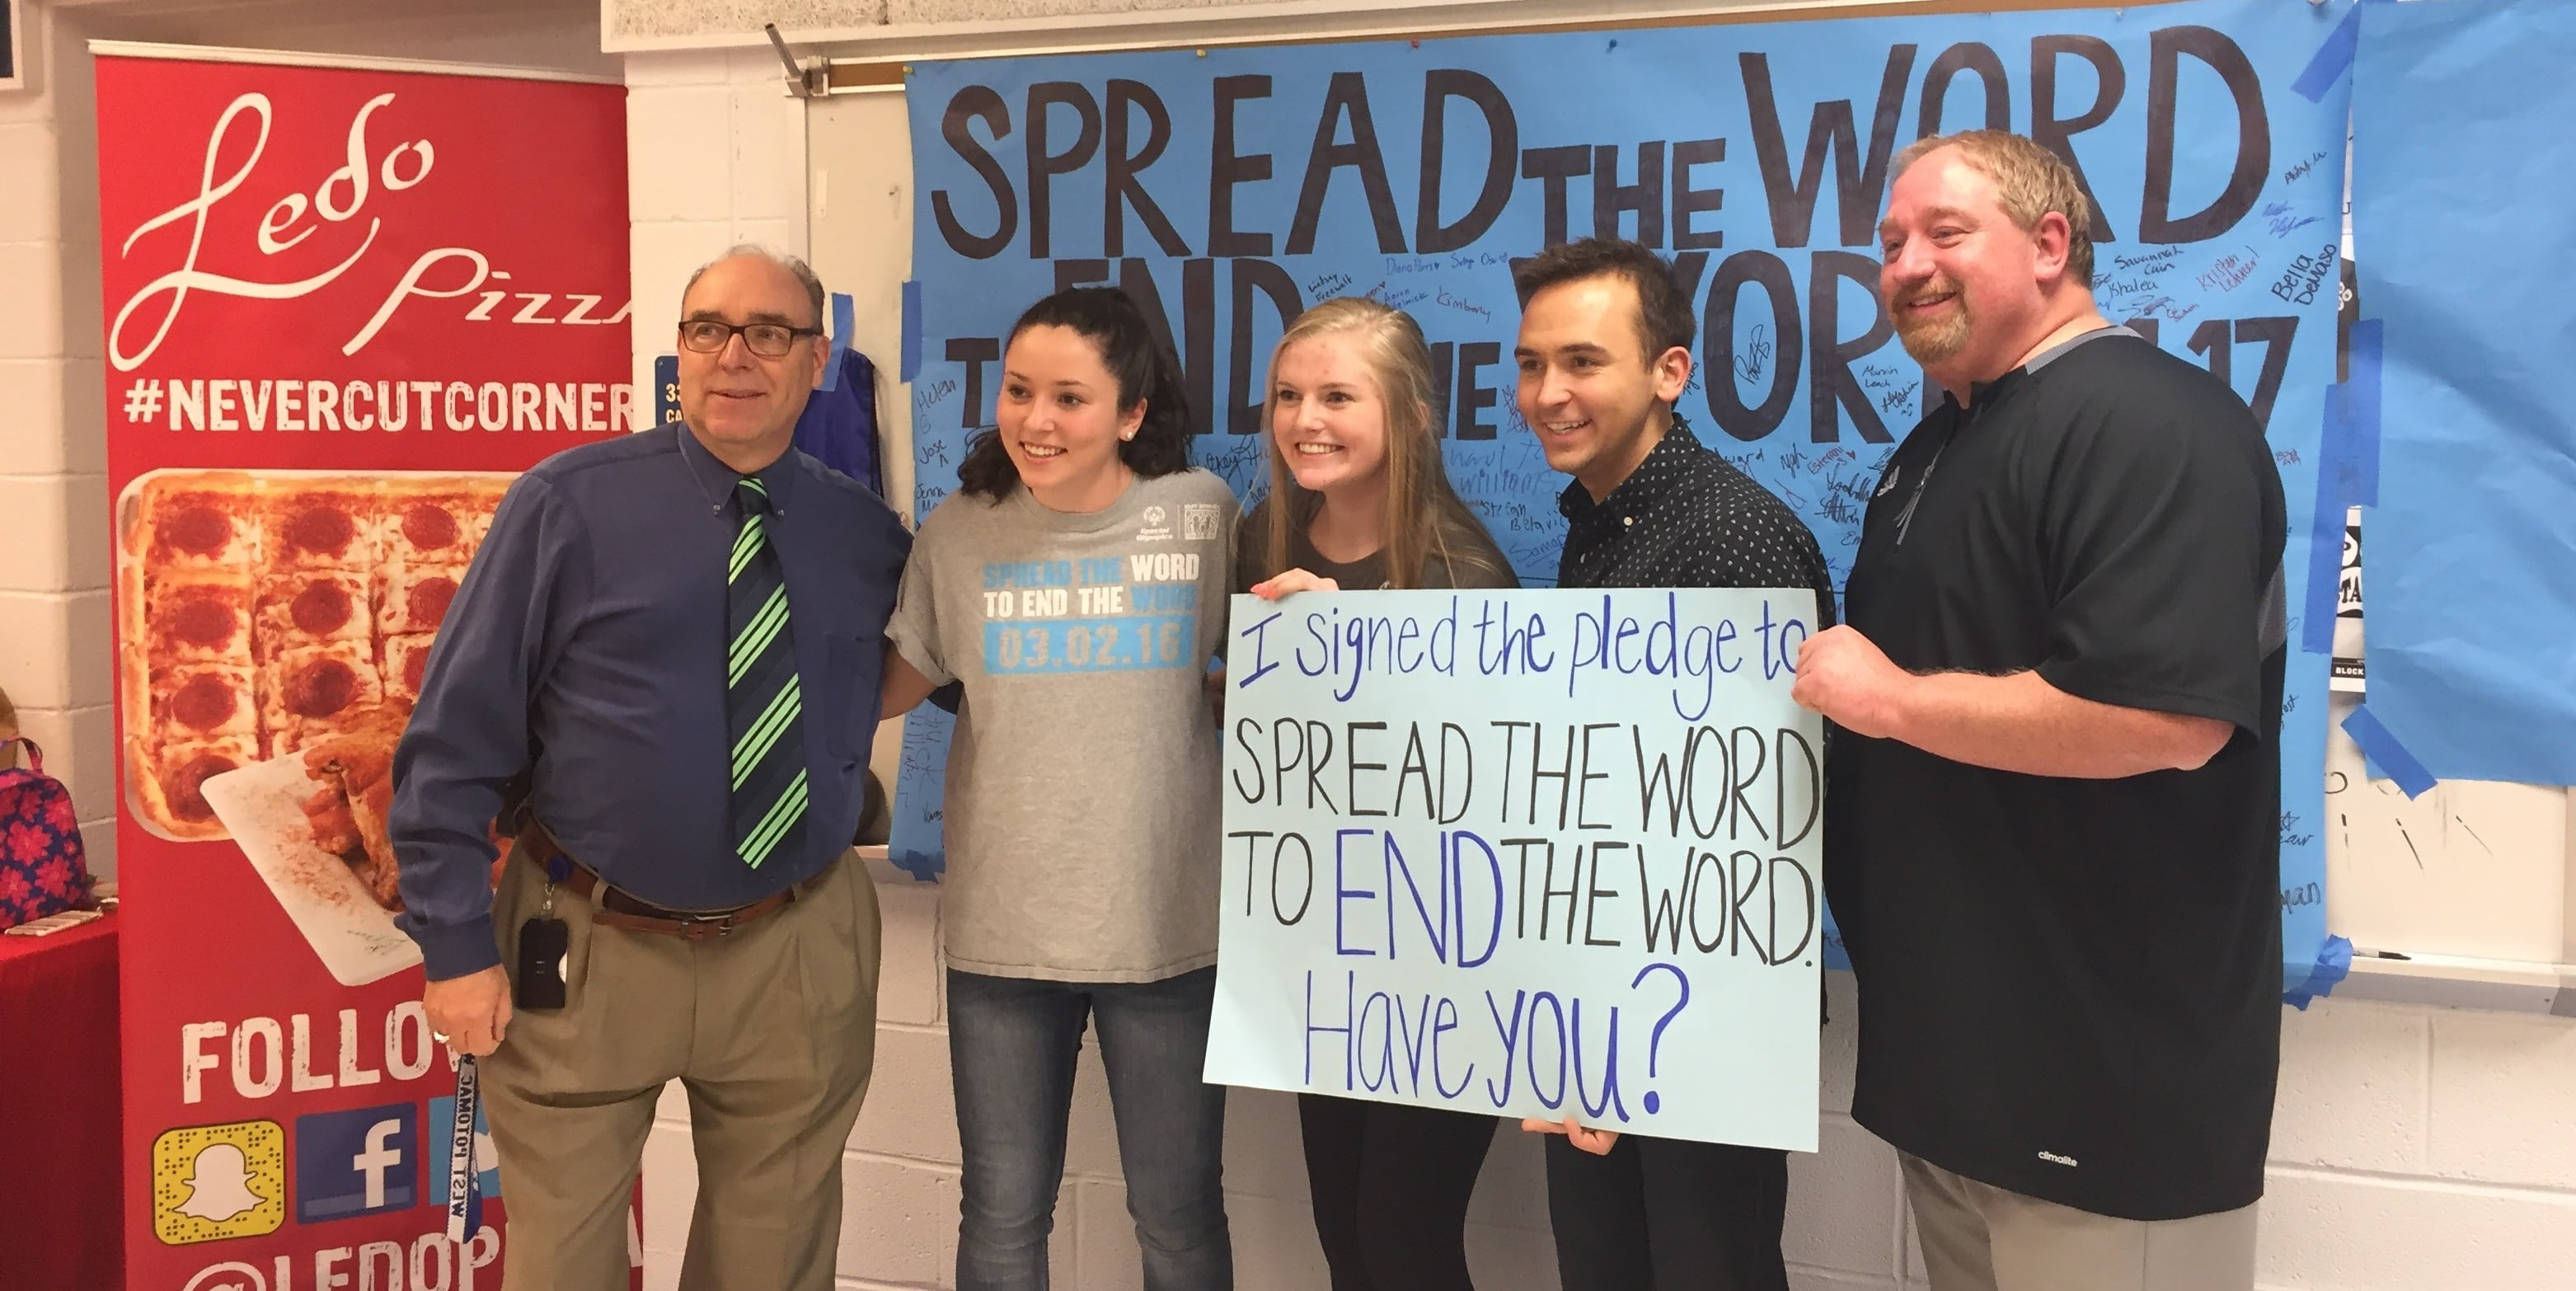 Tommy McFly, Capital Region Schools Unite In Ending the R-word